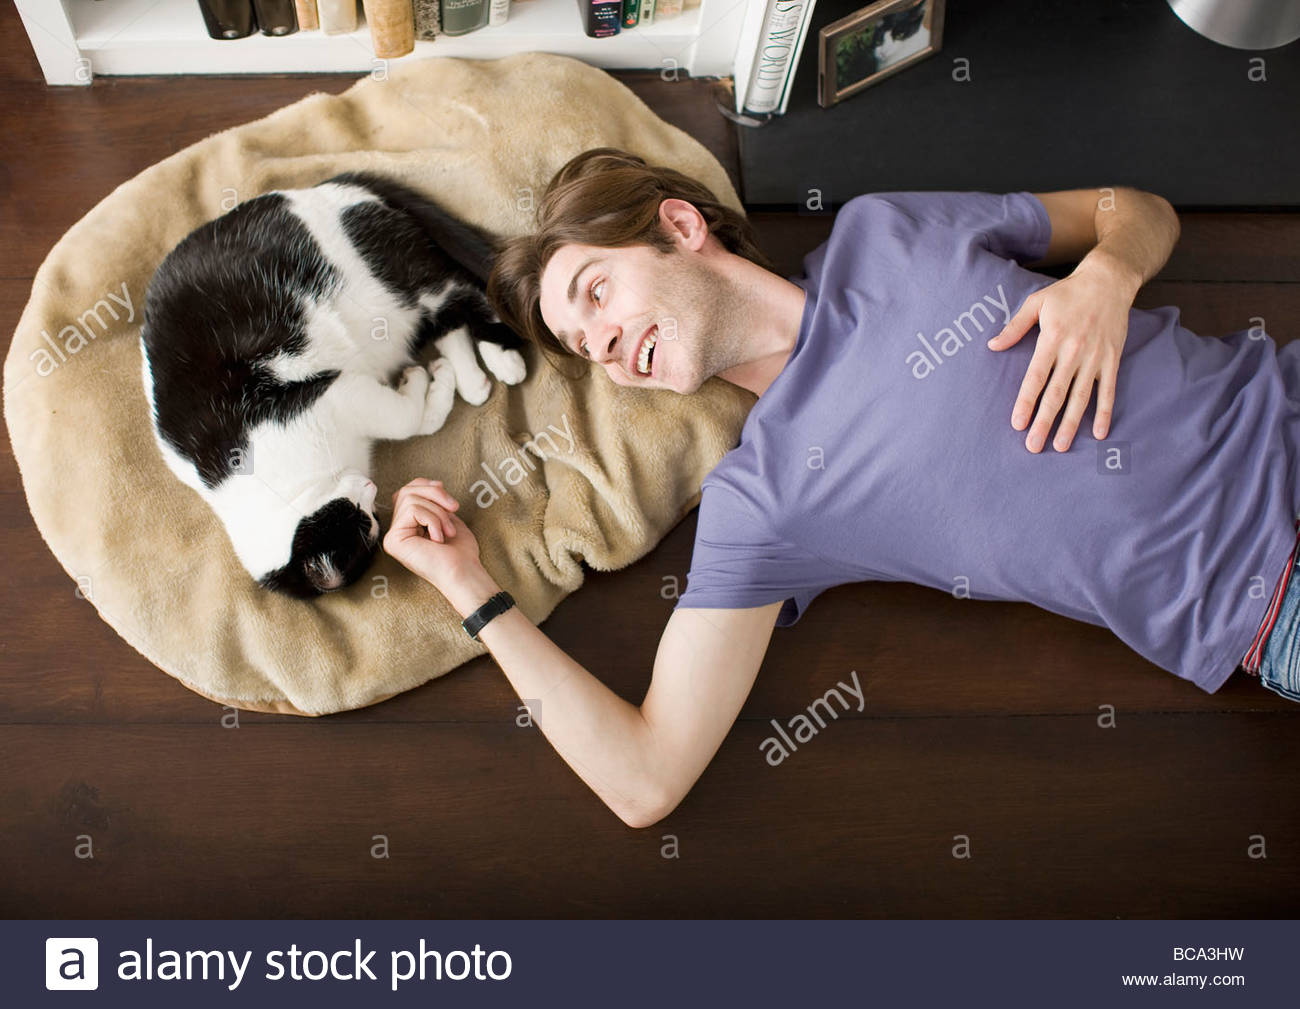 Man laying on floor with cat - Stock Image